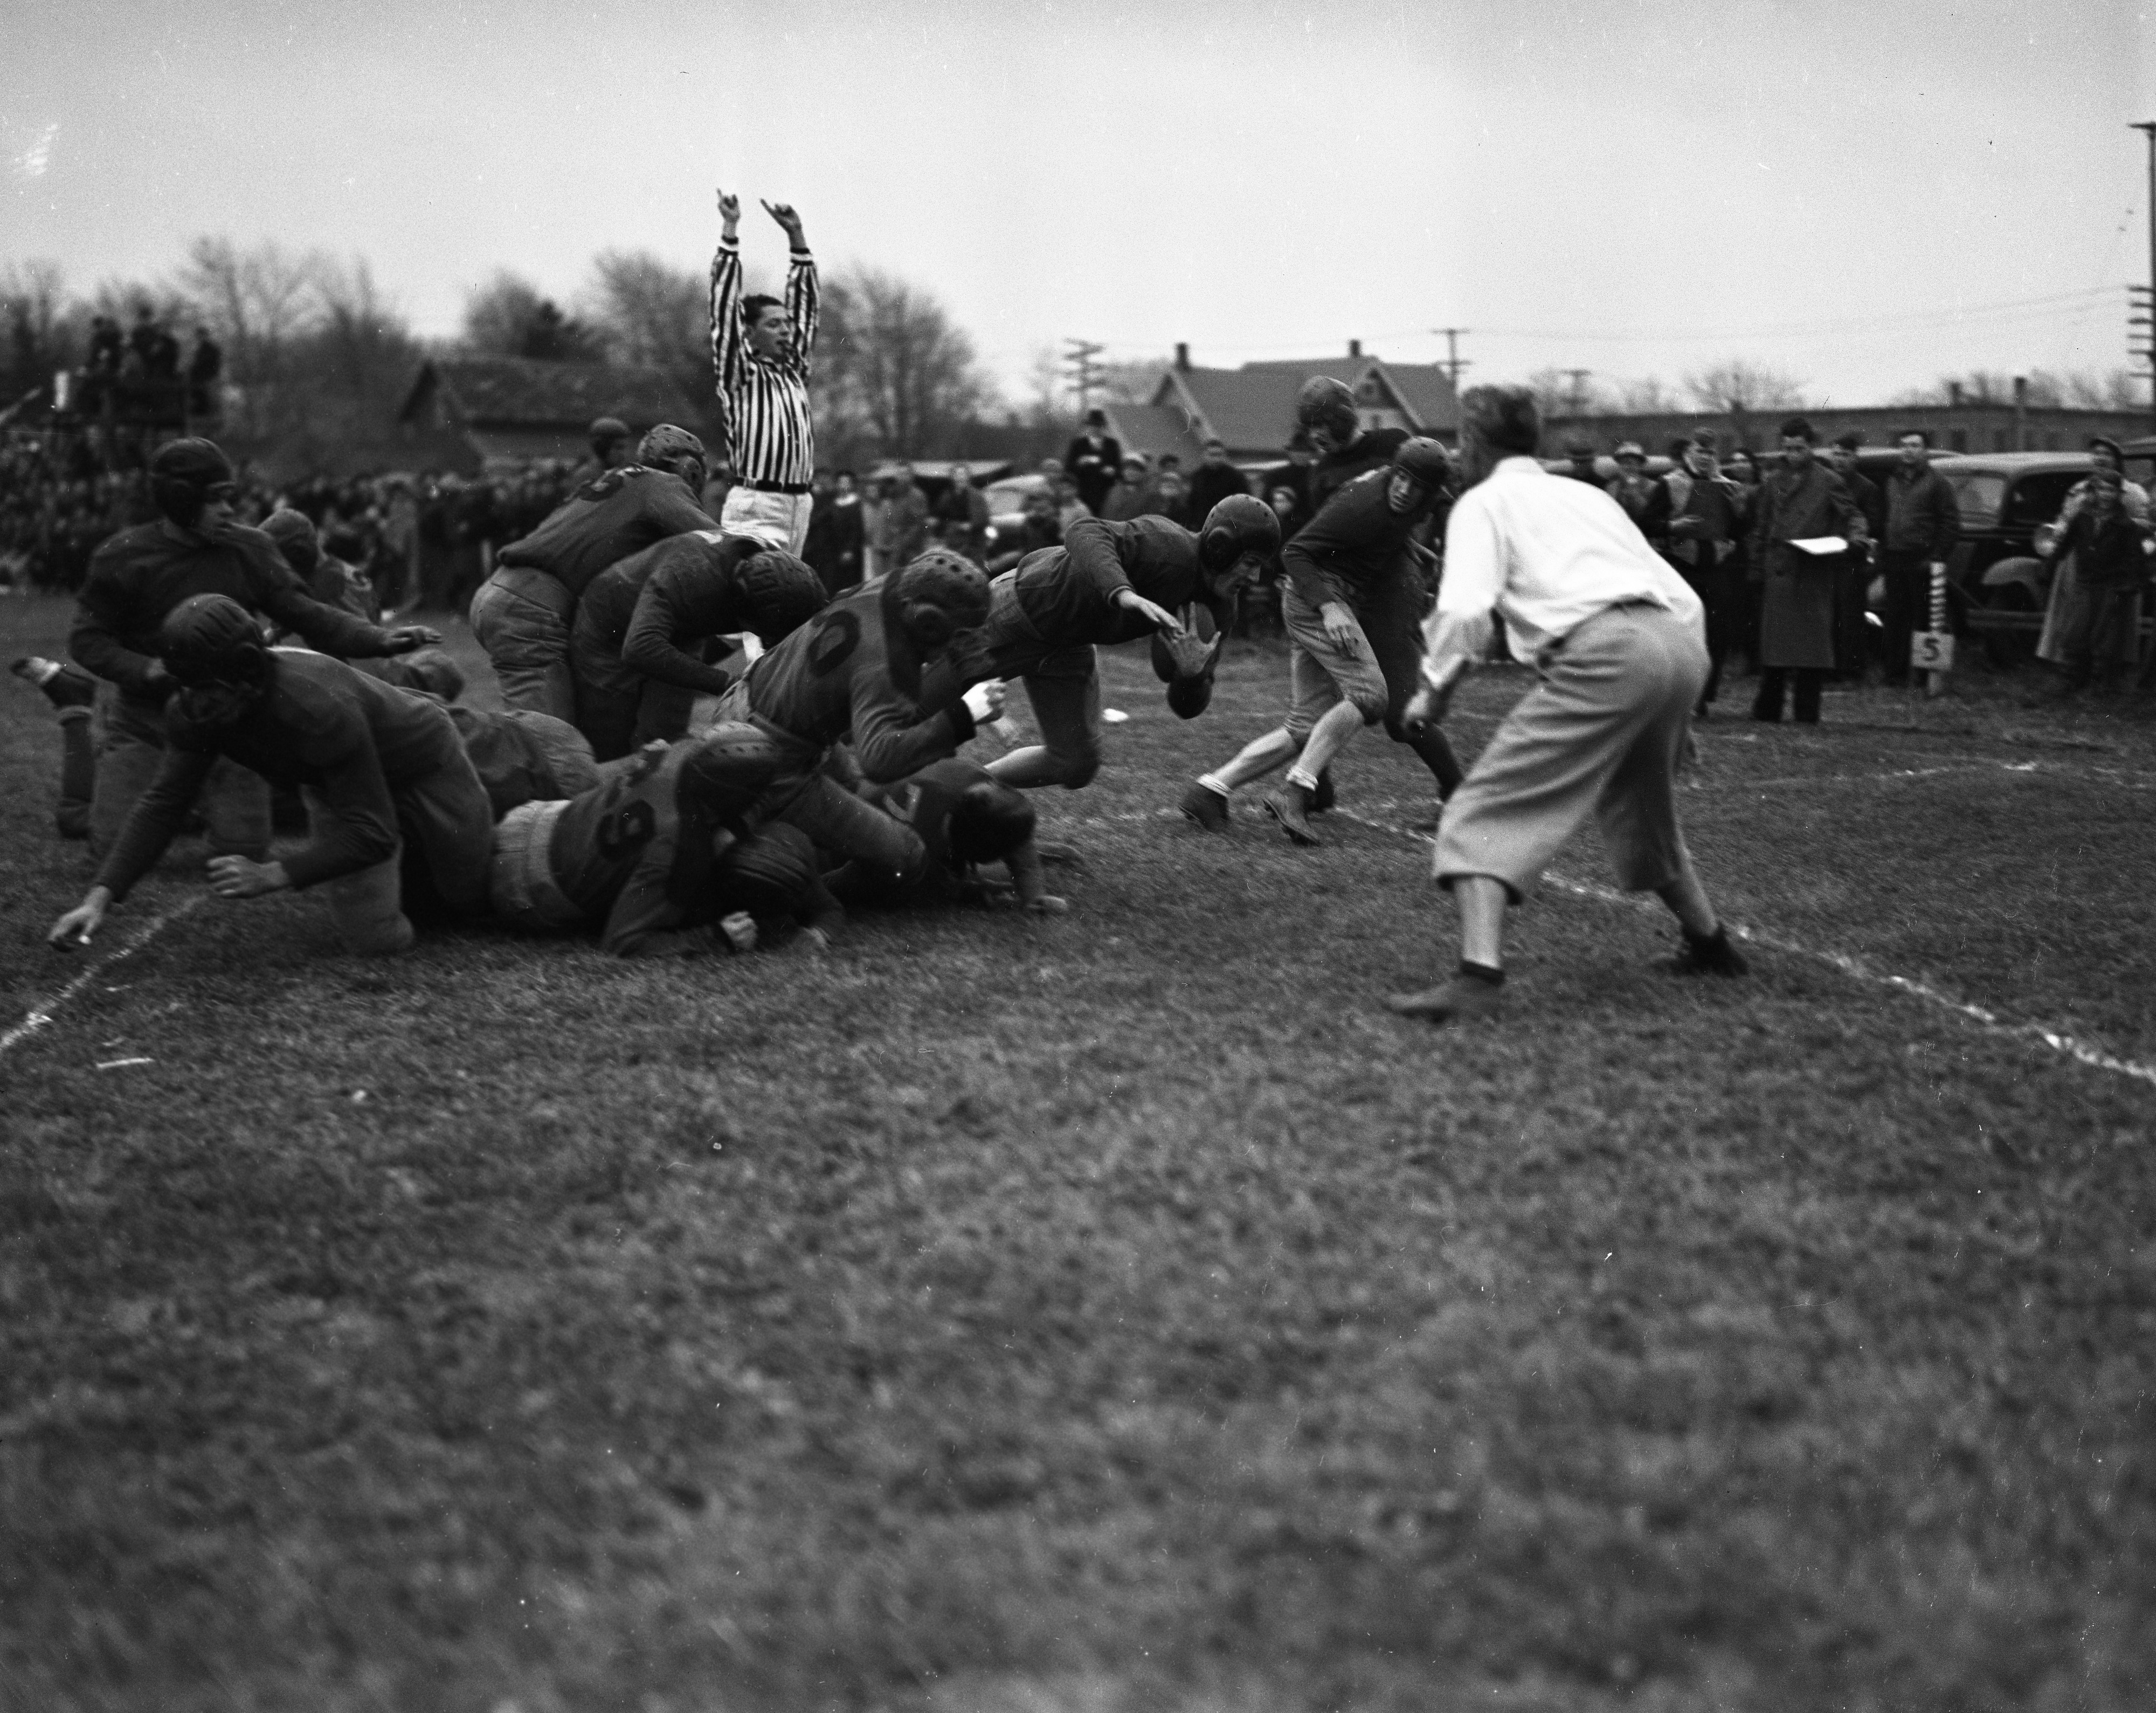 Wyman Davis Scores A Touchdown For Dundee High School vs. Milan High School, November 1937 image